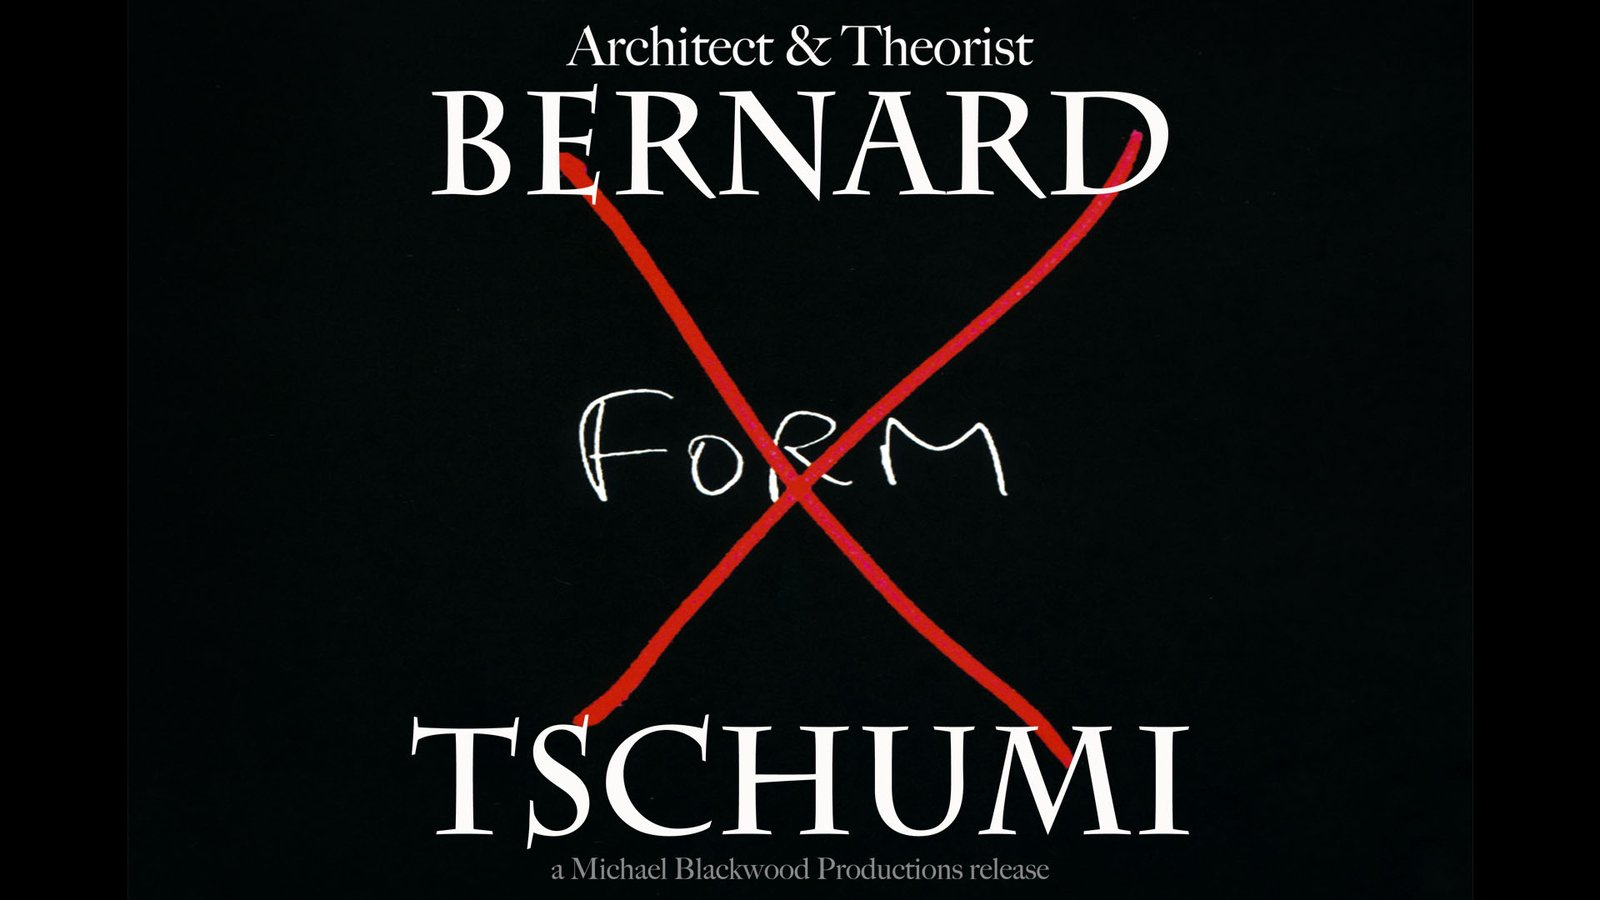 Bernard Tschumi: Architect and Theorist